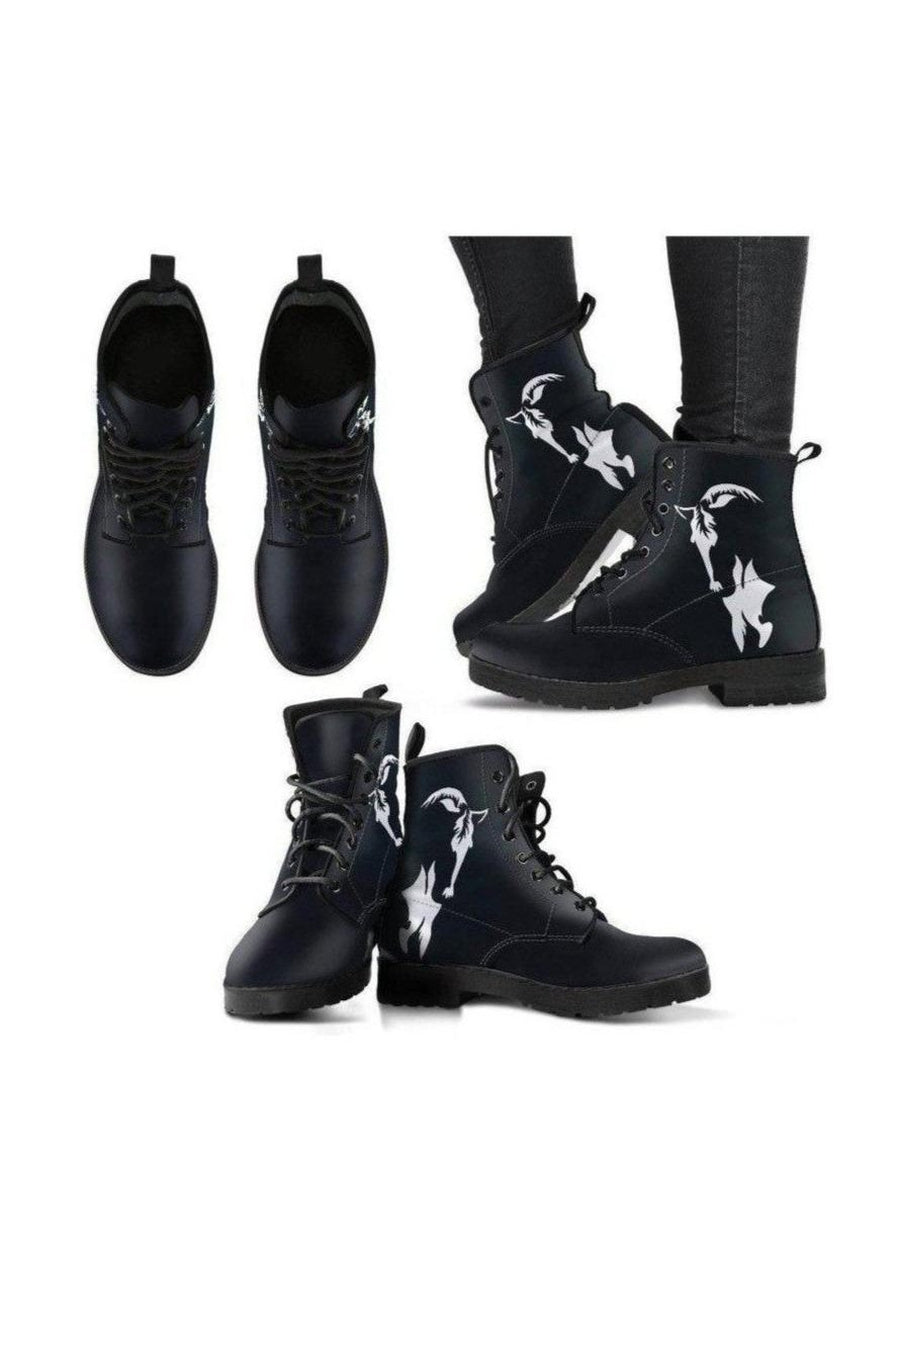 Black Horse PU Leather Boots